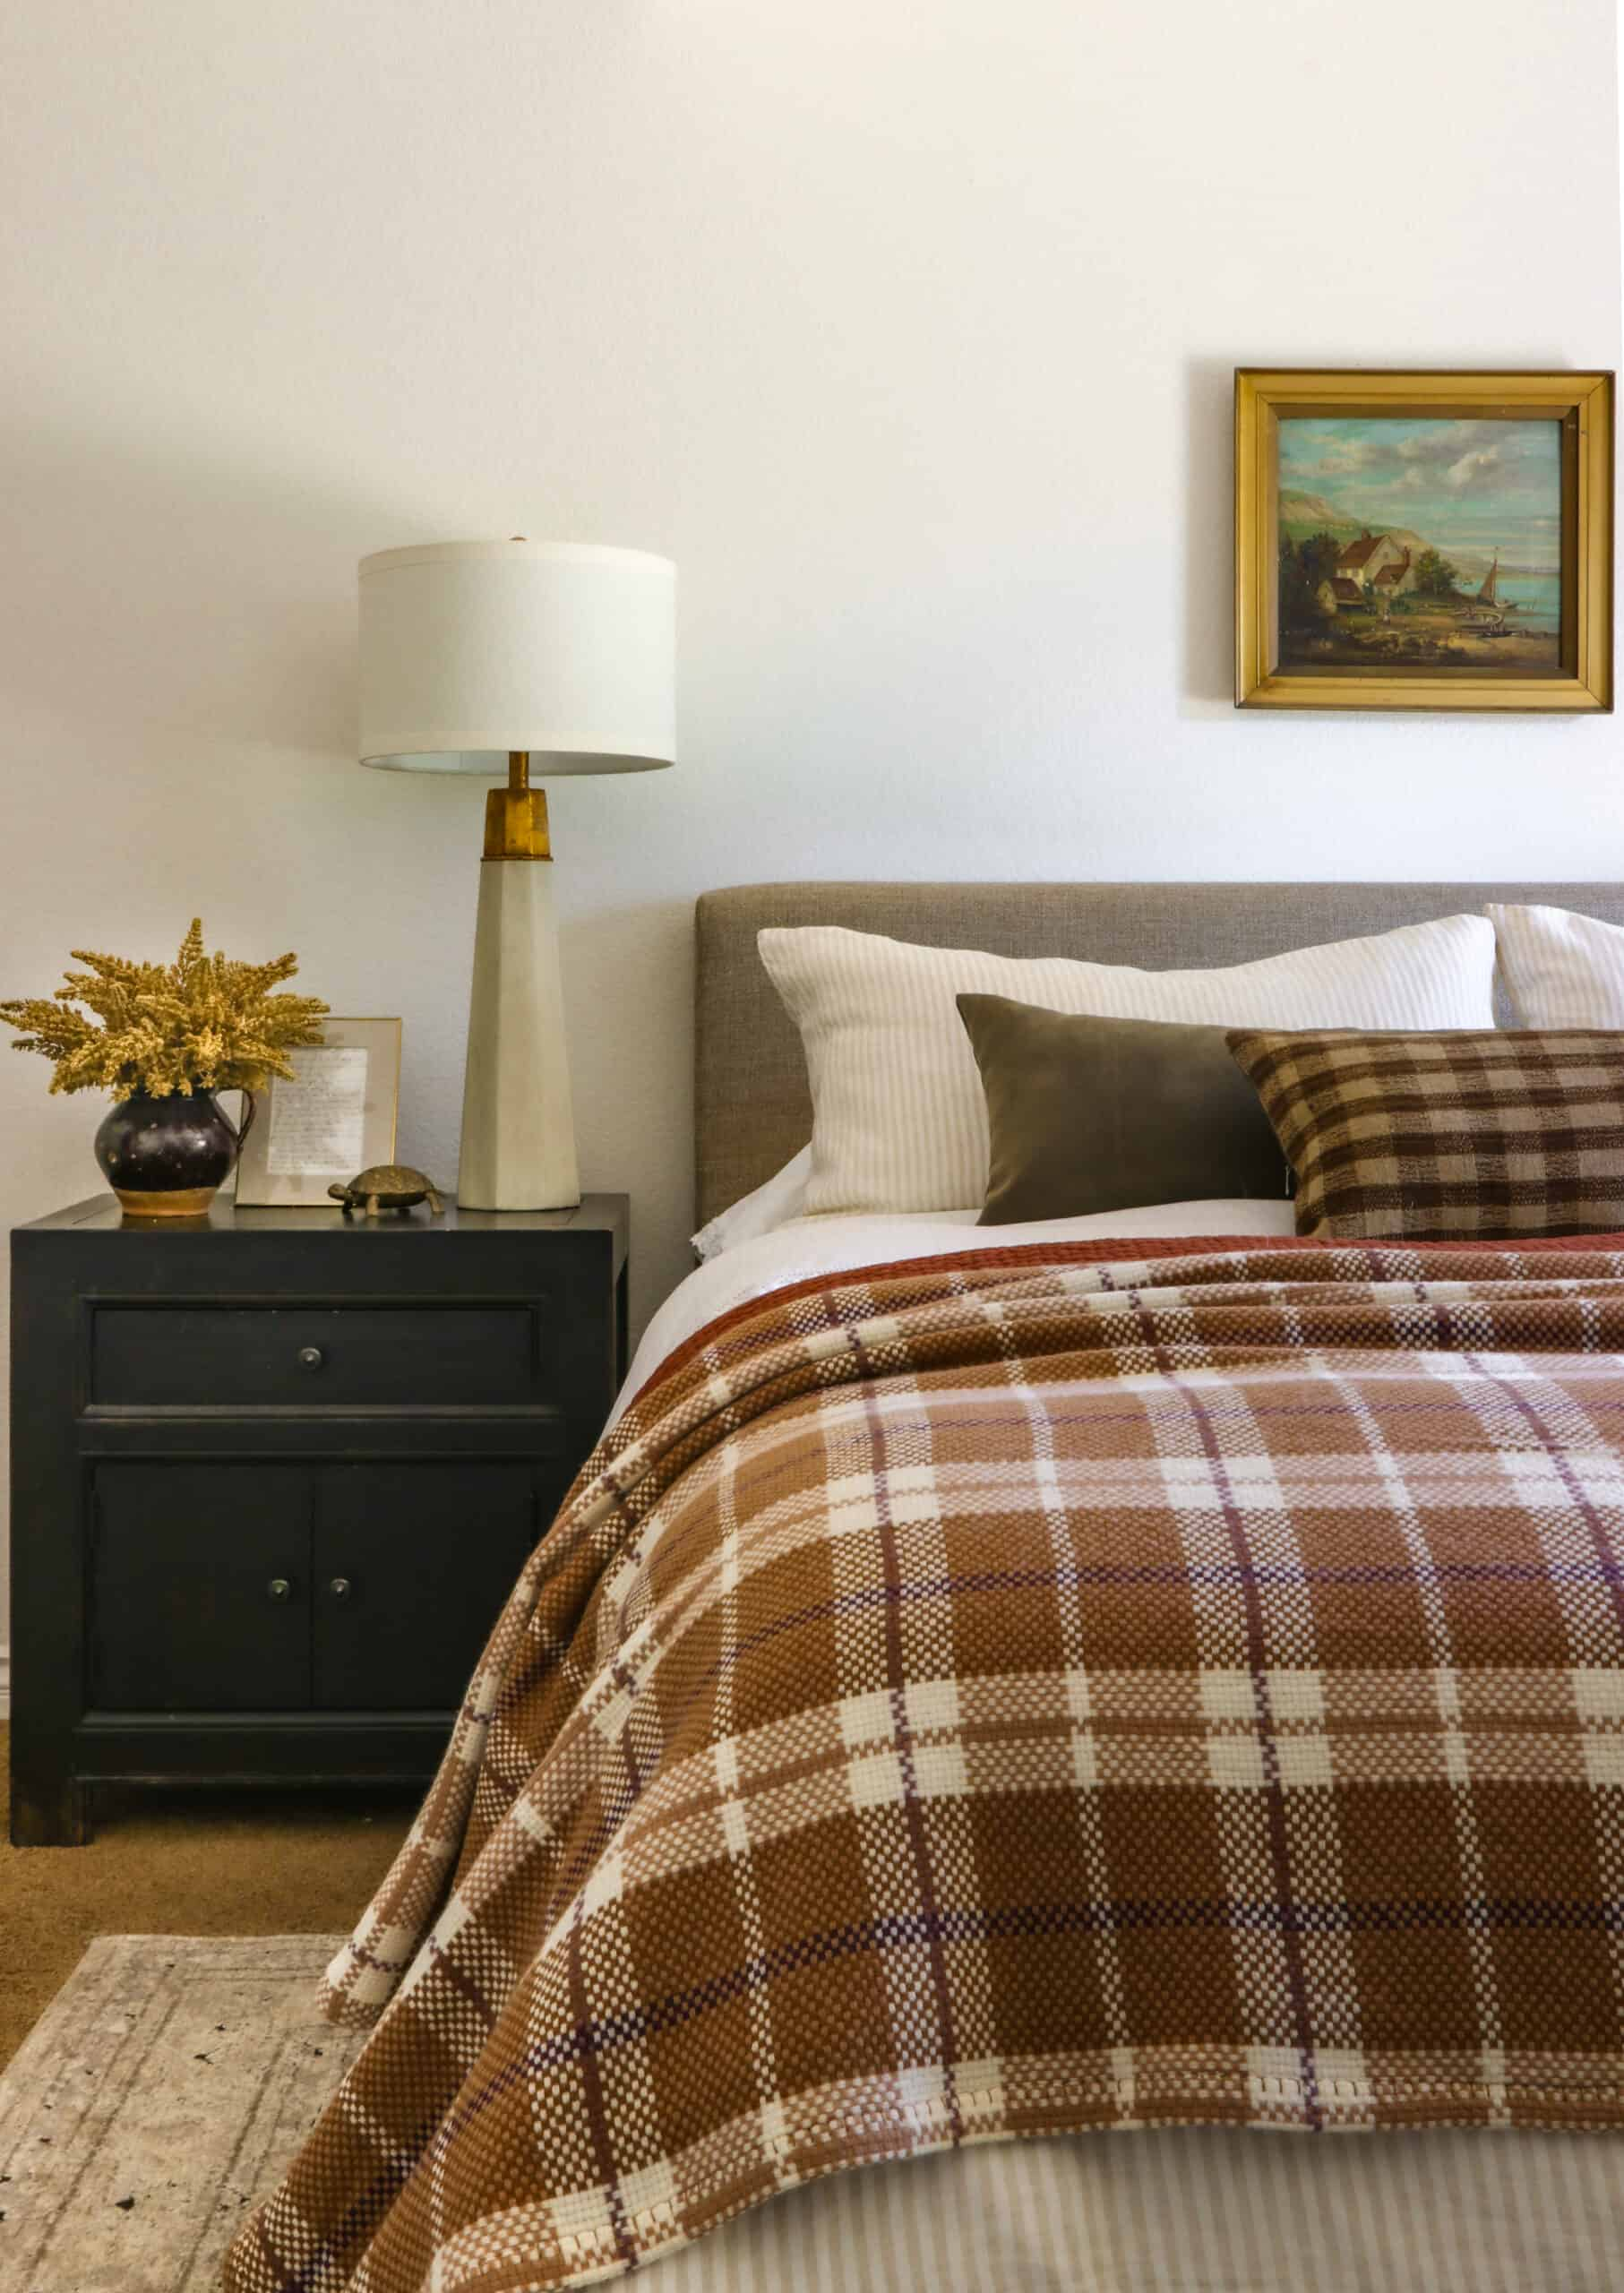 plaid and rust bedding on bed with oil painting above and nightstand beside